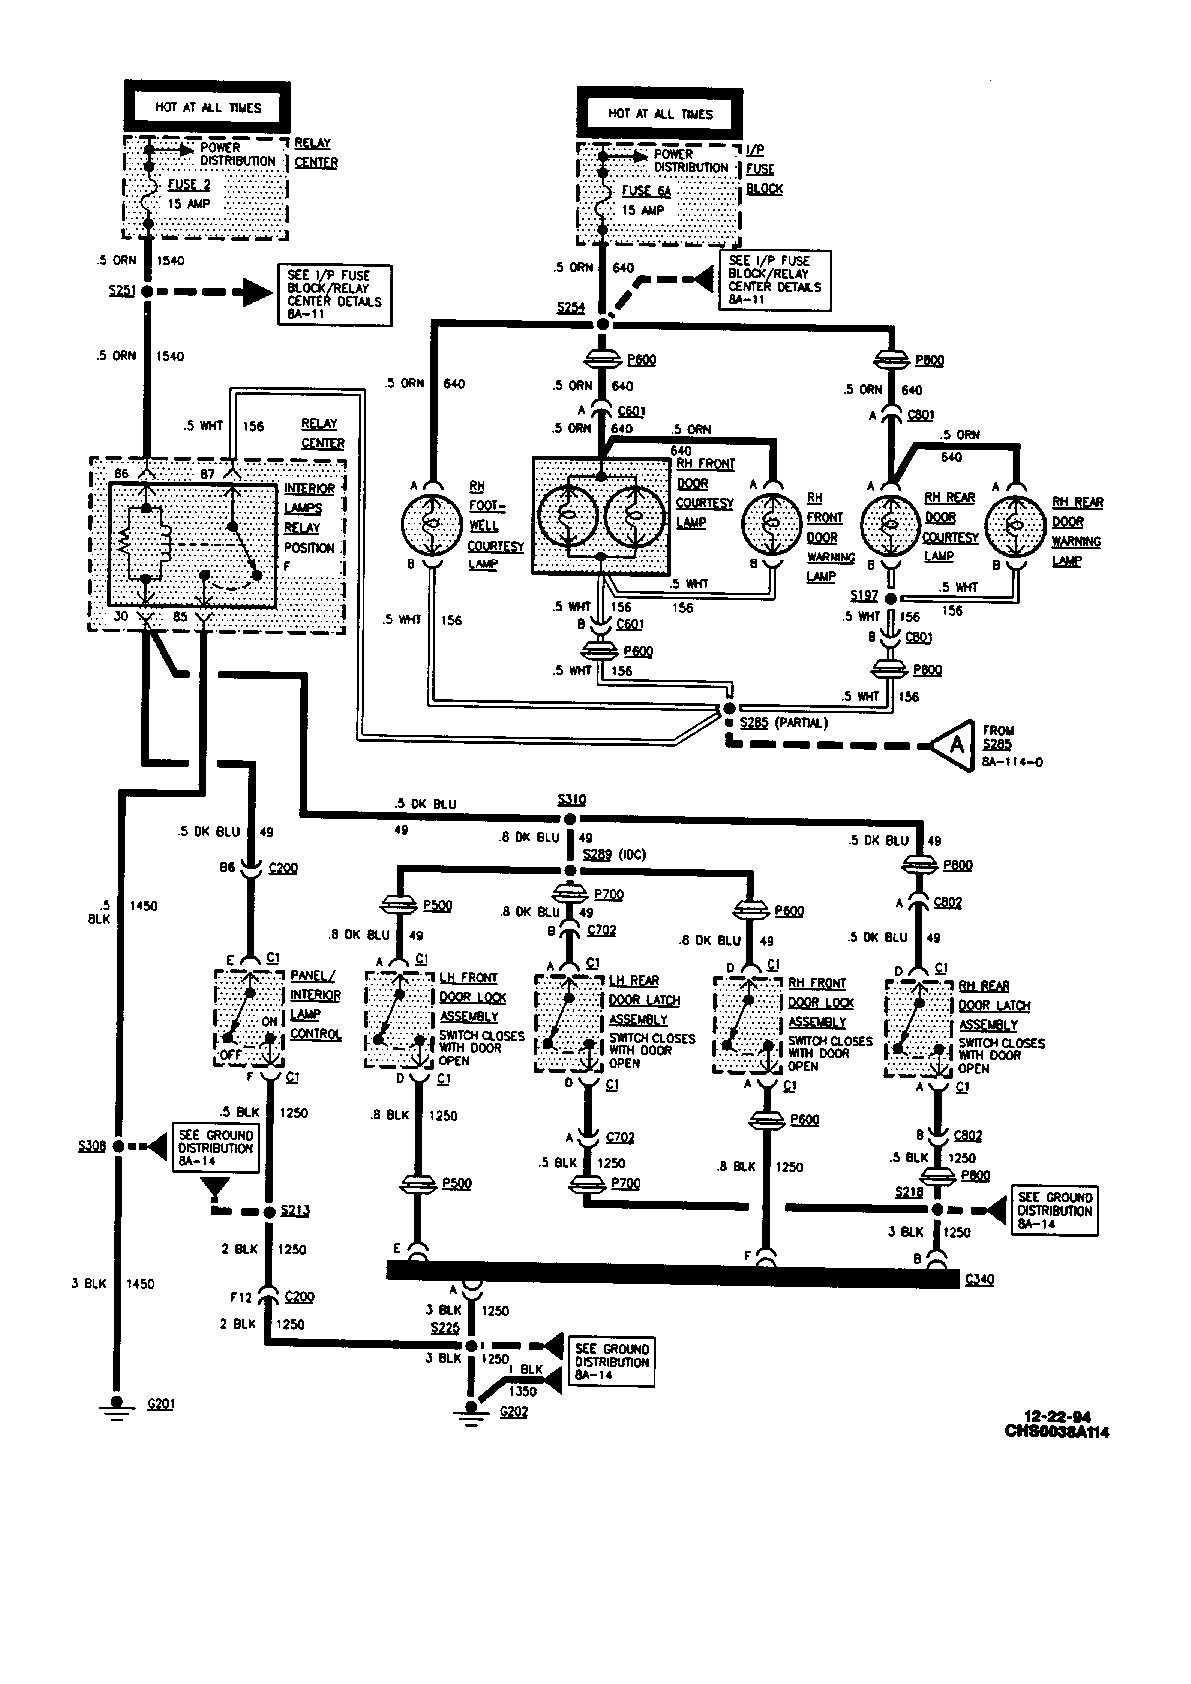 hight resolution of gm 3800 v6 wiring diagram wiring diagram portal u2022 rh getcircuitdiagram today 3800 series 2 engine